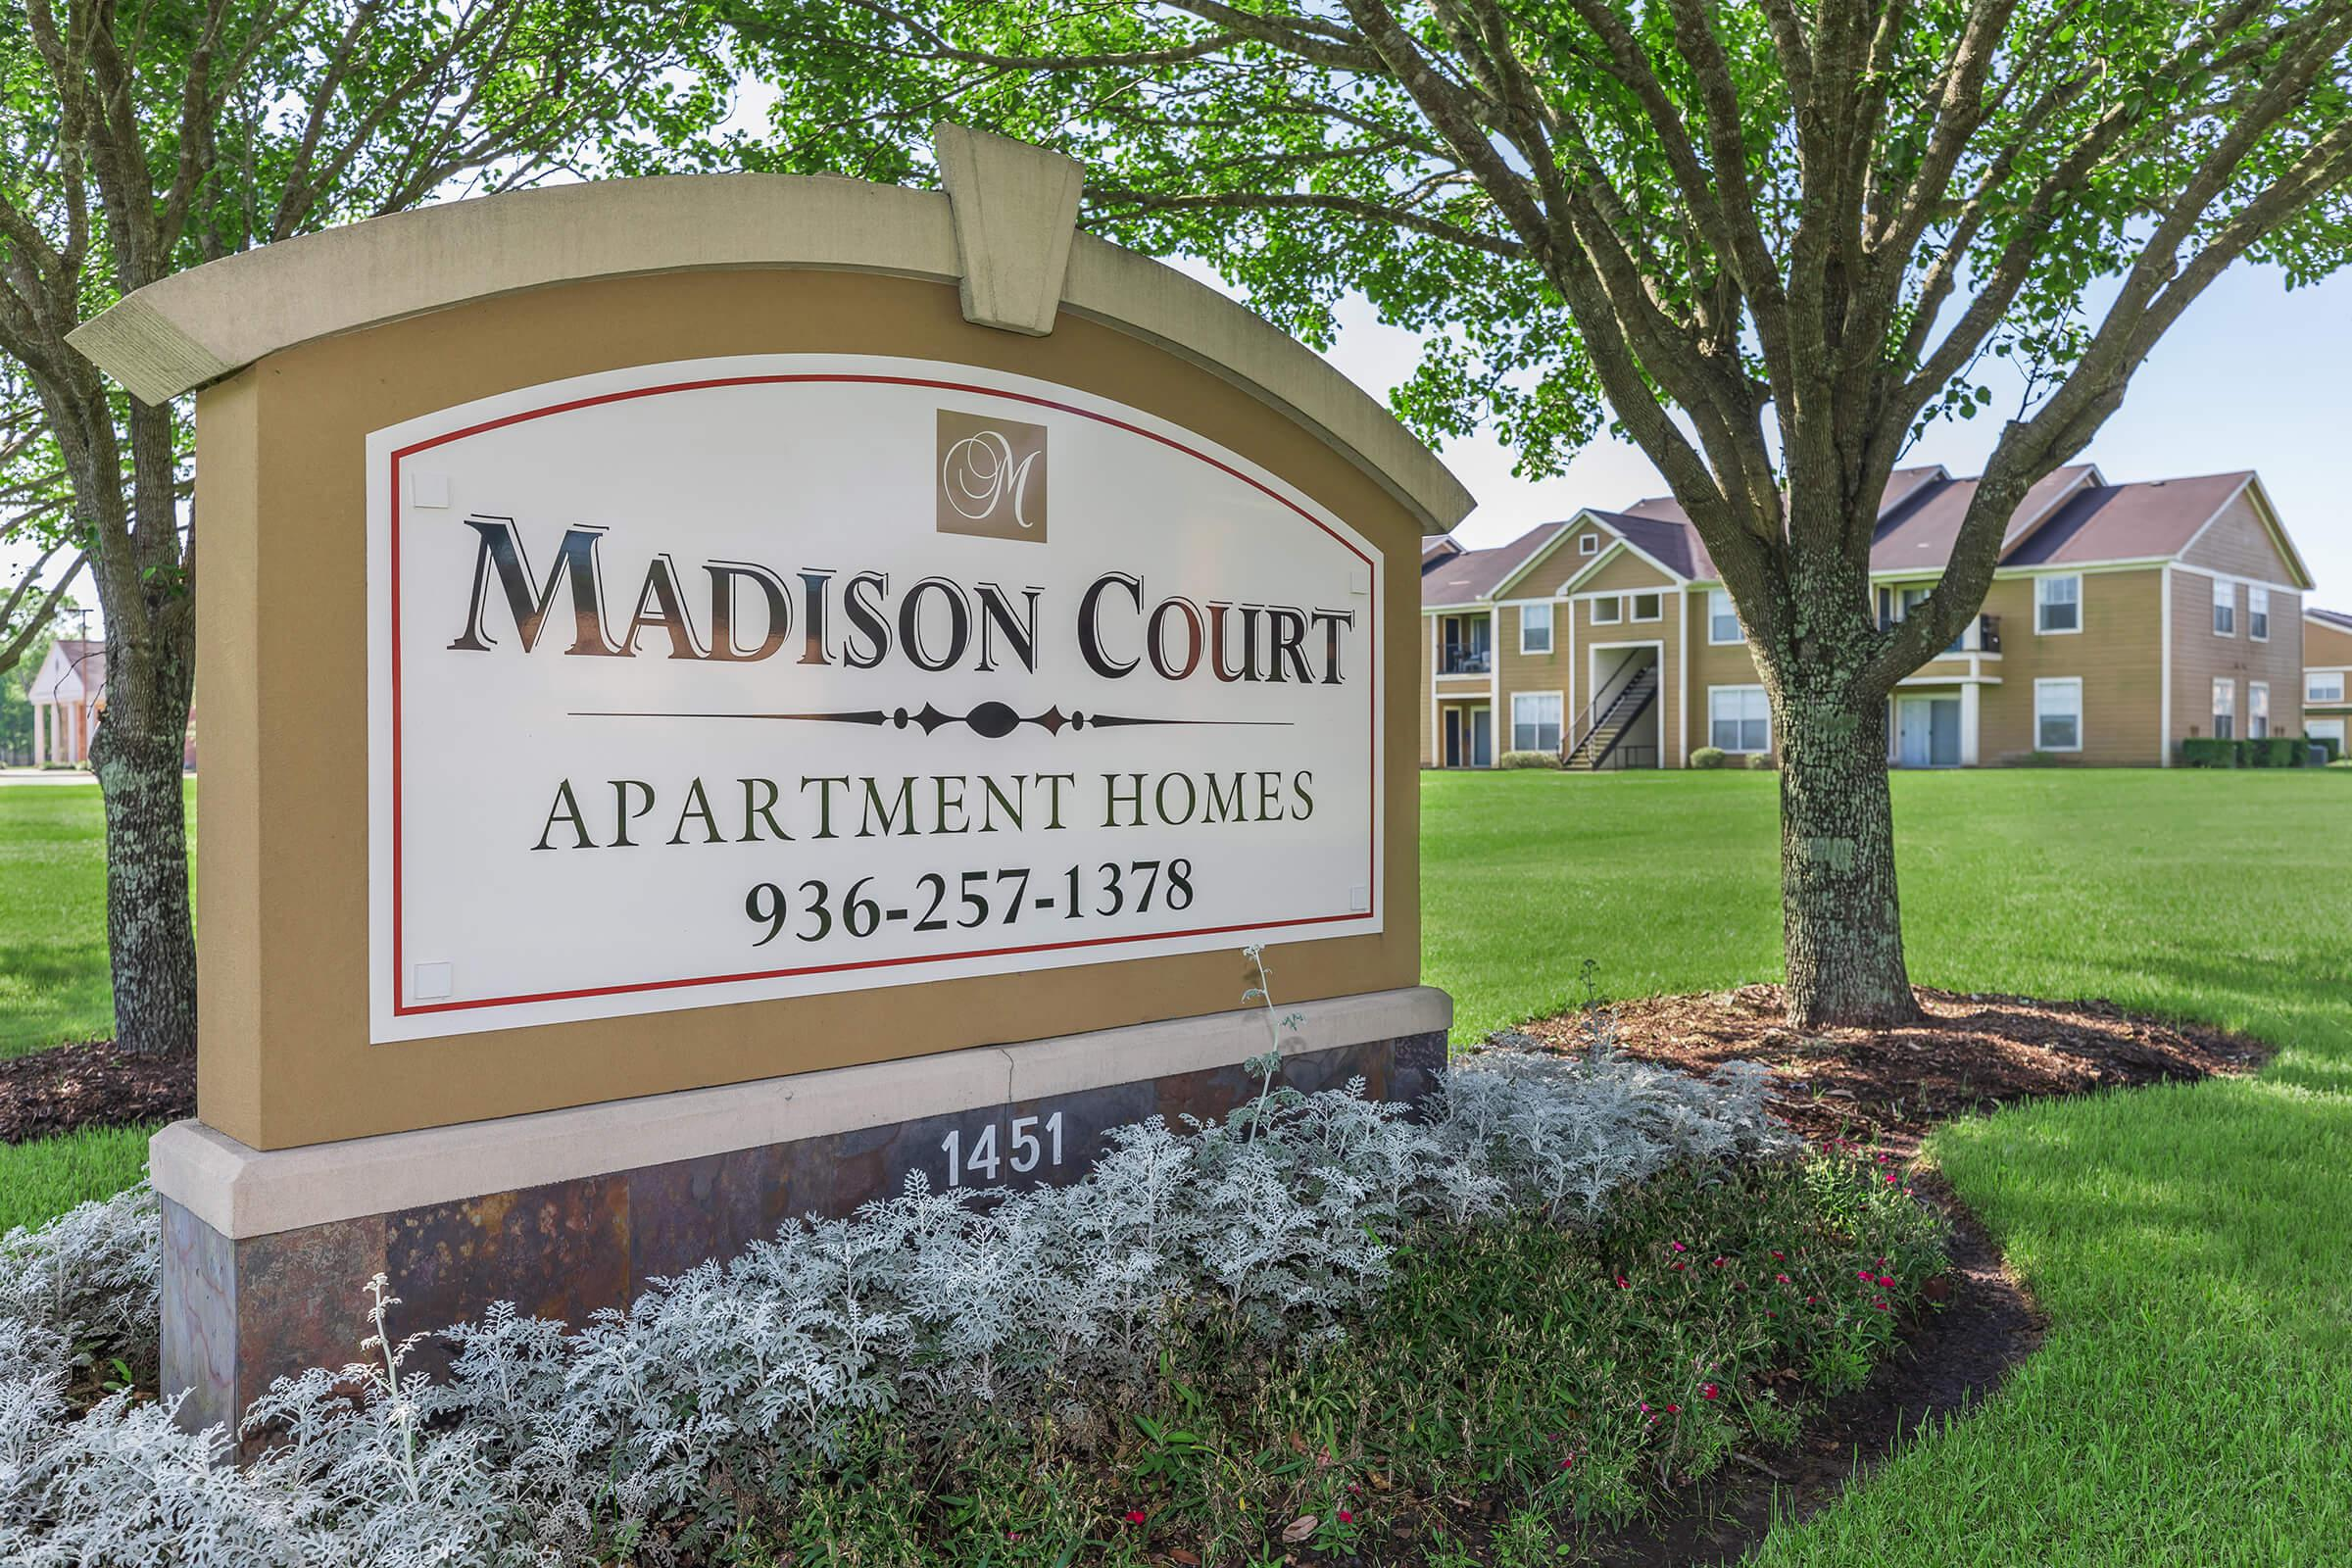 Picture of Madison Court